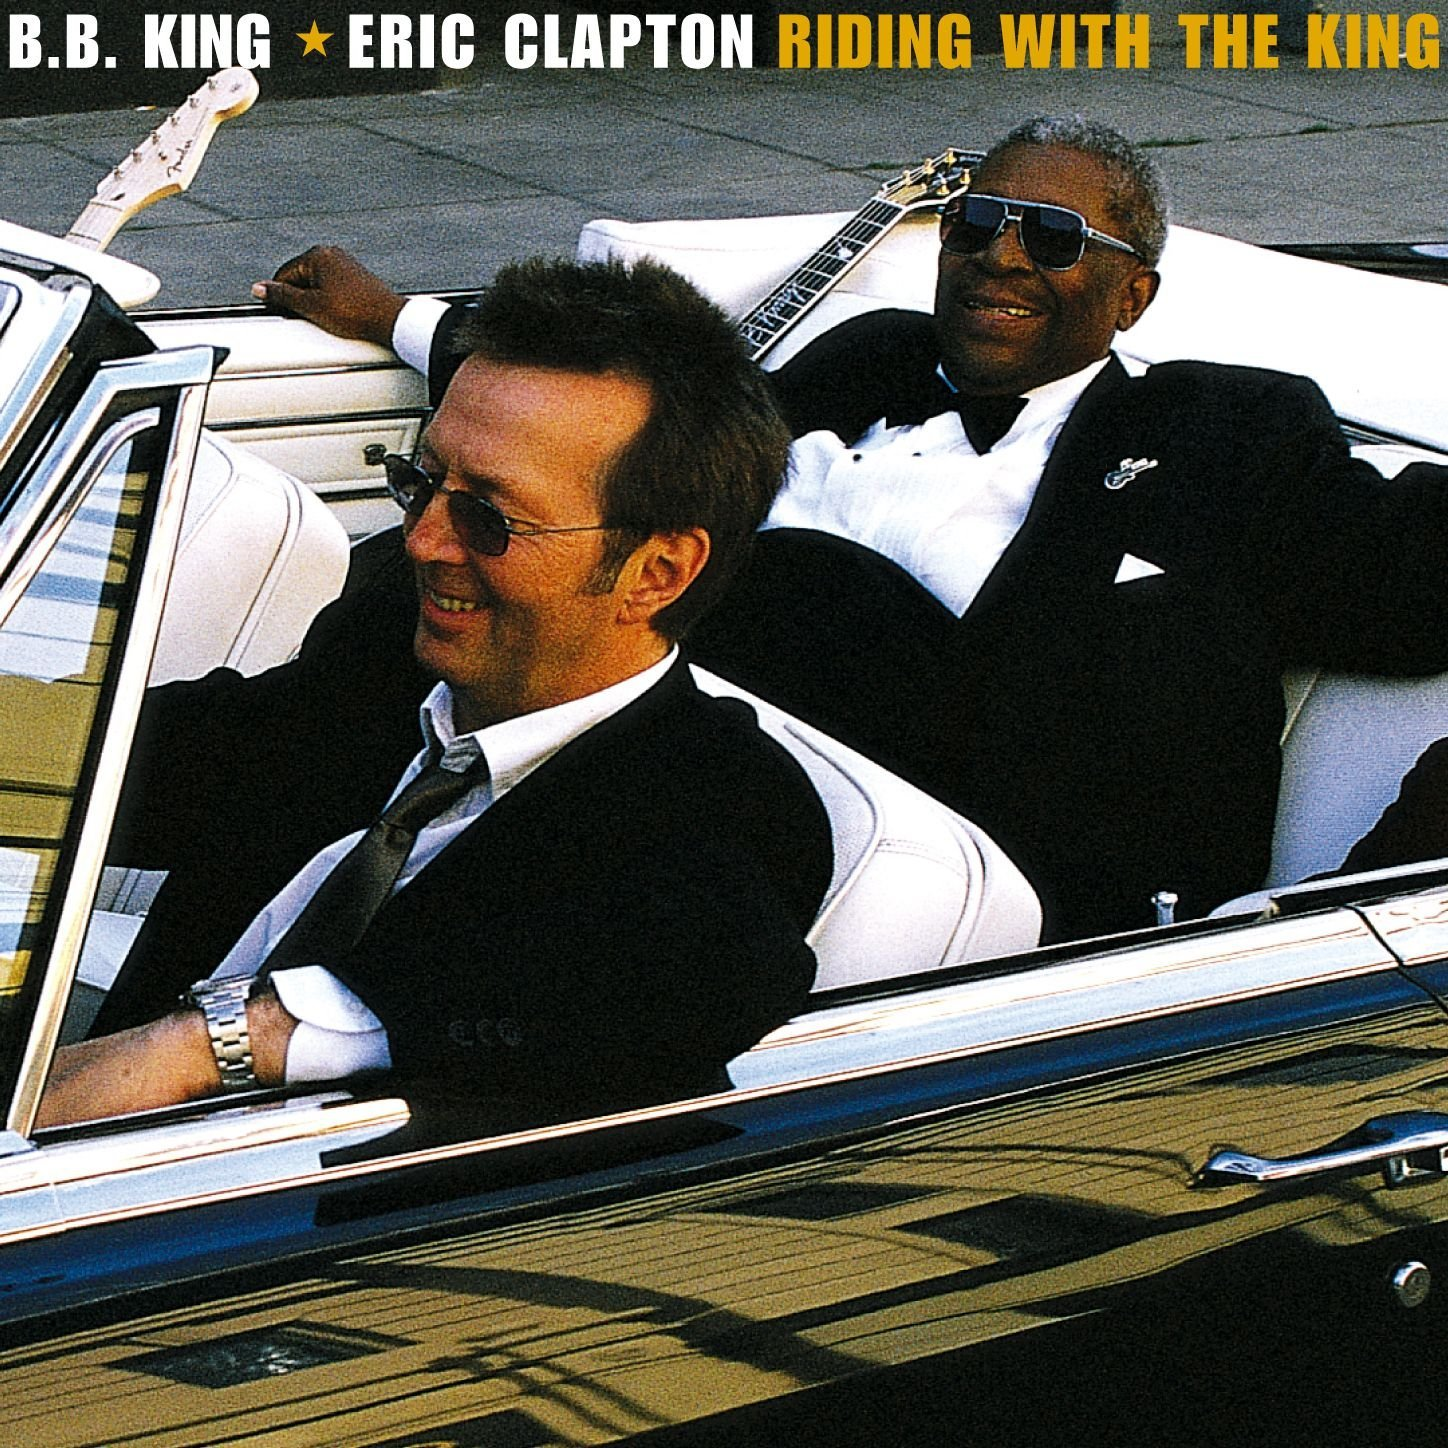 eric clapton bb king riding with the king album cover